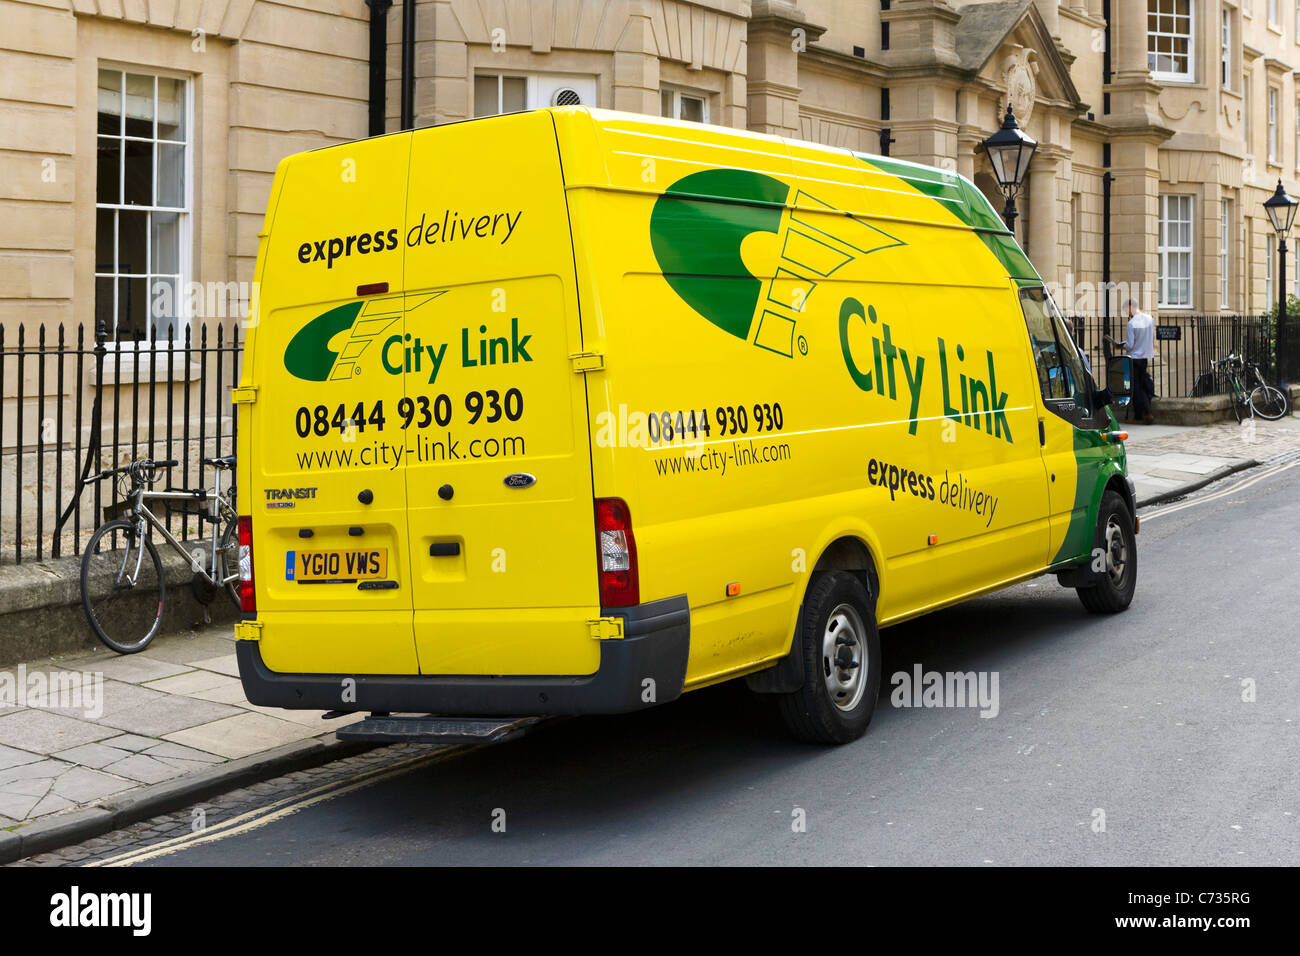 City Link delivery van in Oxford city centre, Oxfordshire, England, UK - Stock Image